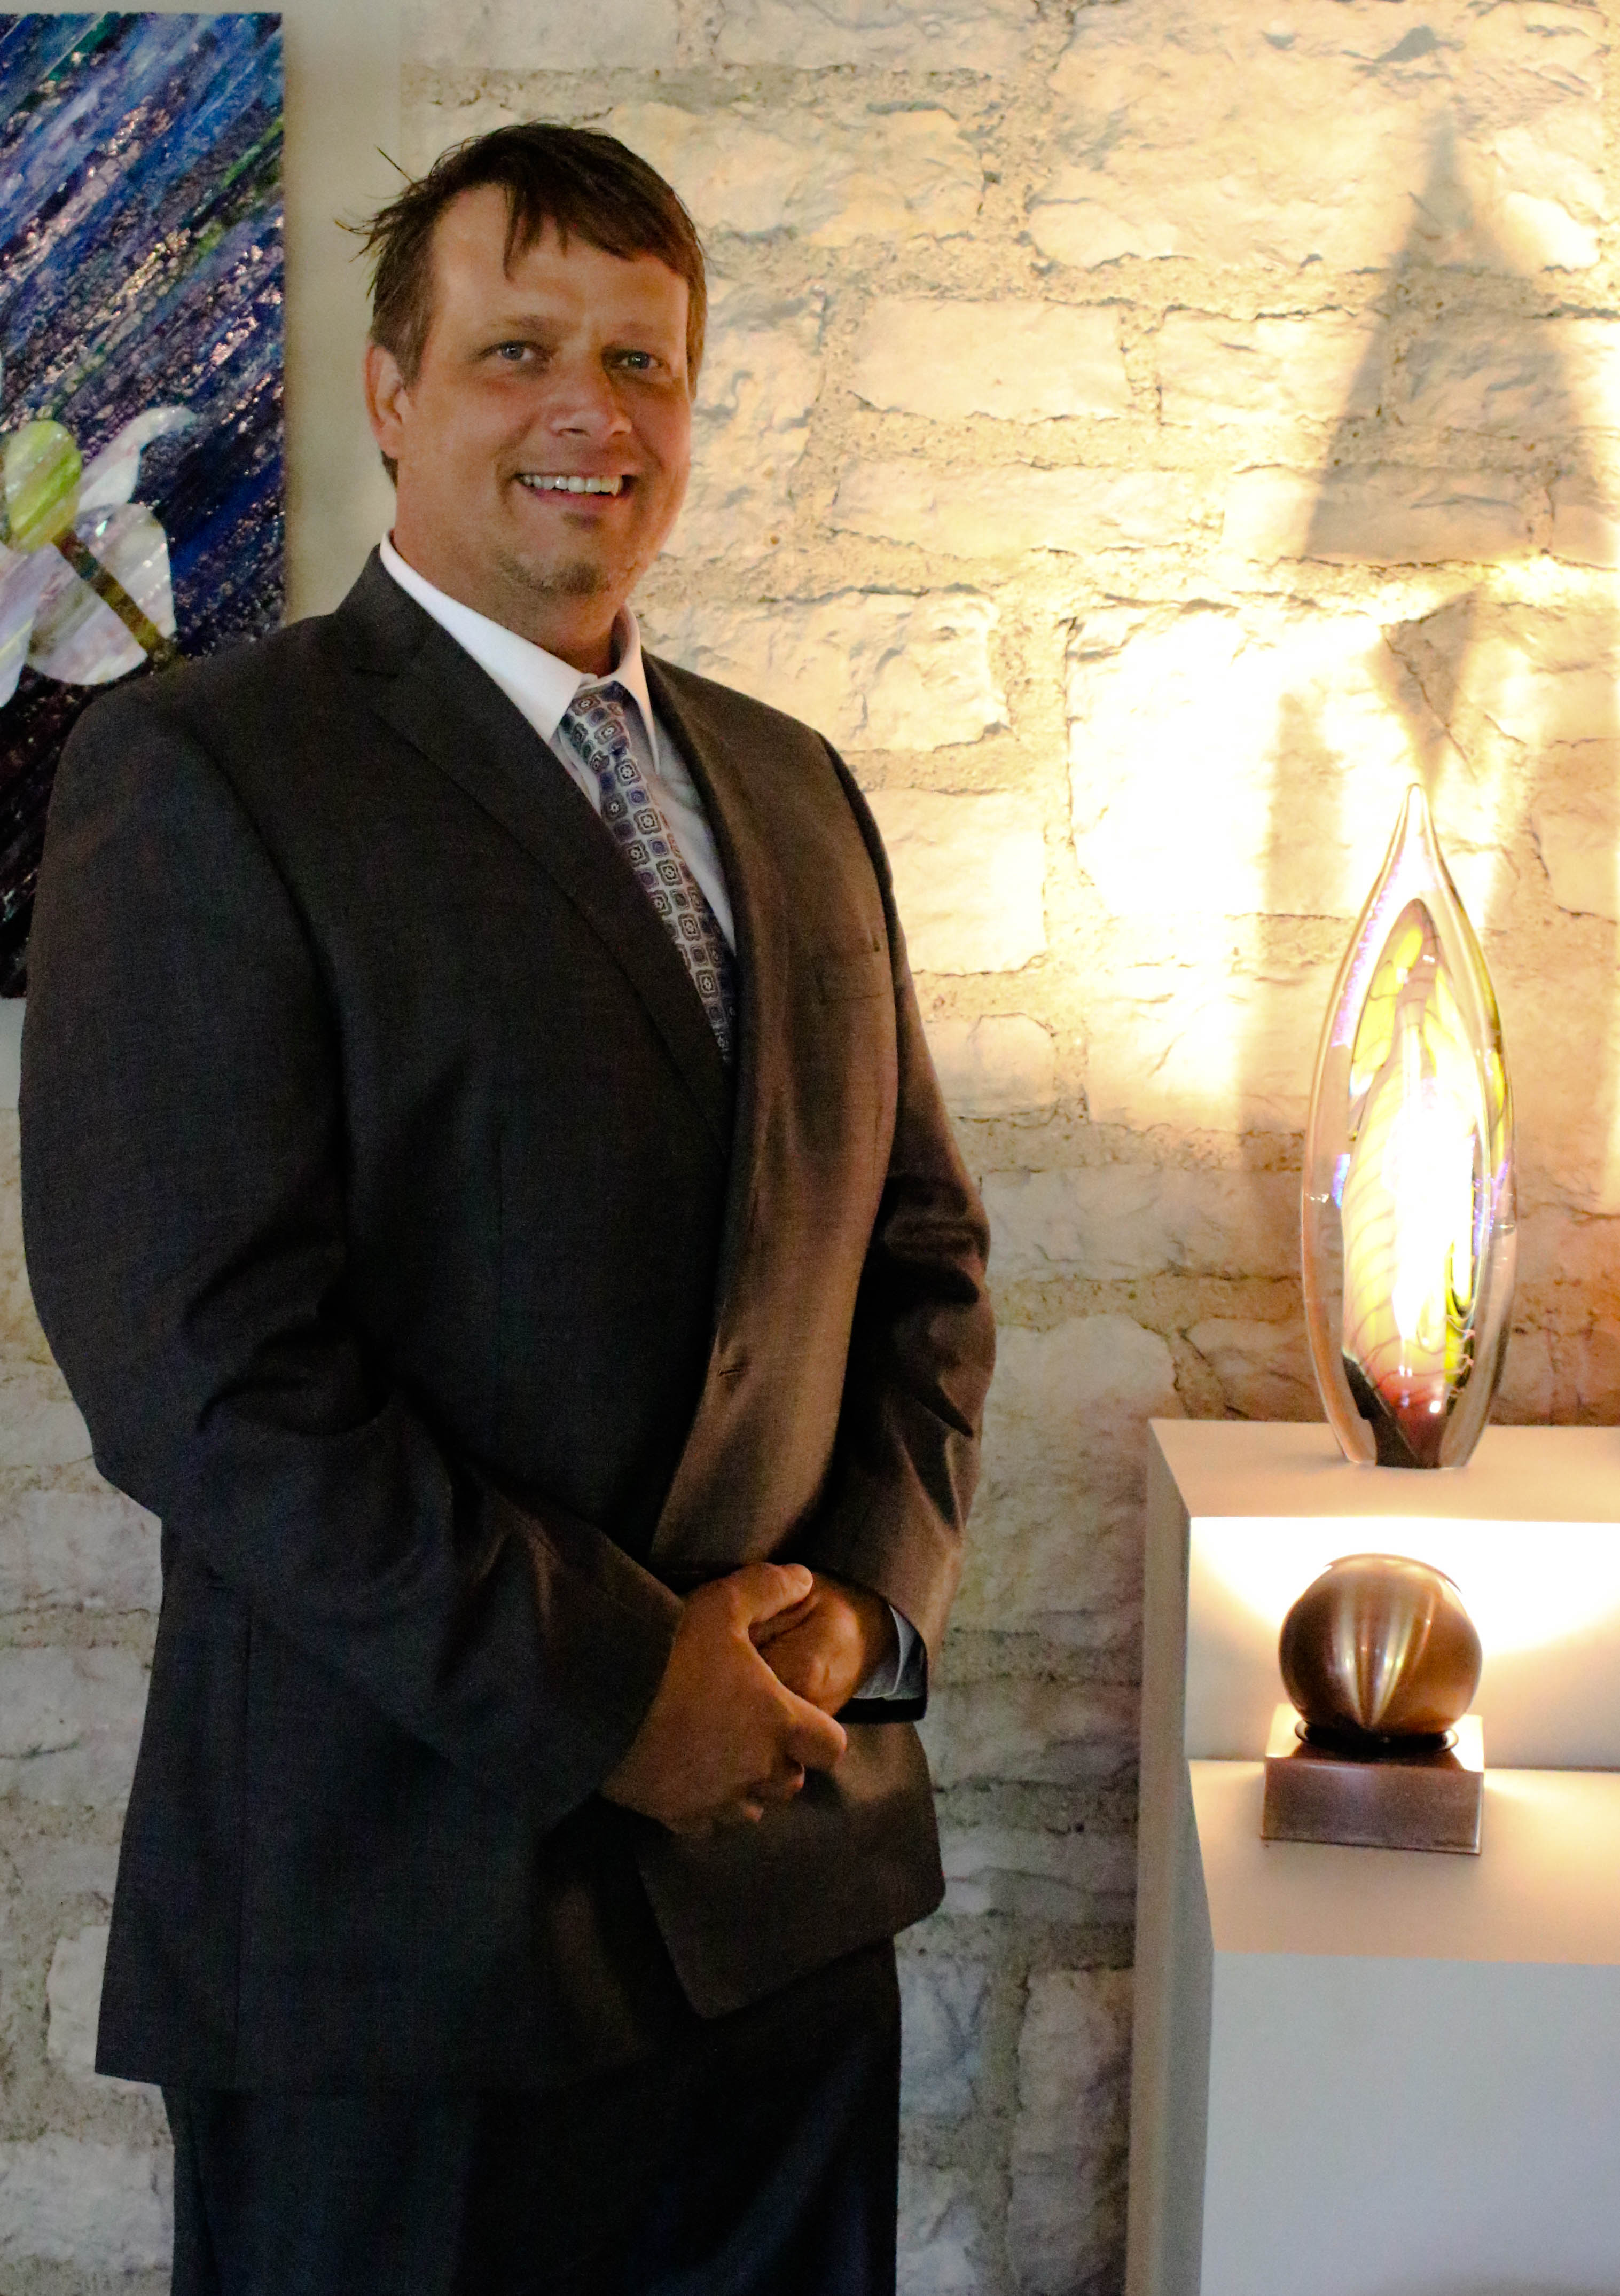 Matthew J. Paskiet, a Holland-based glass artist, stands by one of his pieces, currently on exhibit through September 2017 at the Ohio Governor's Residence in Bexley, Ohio.